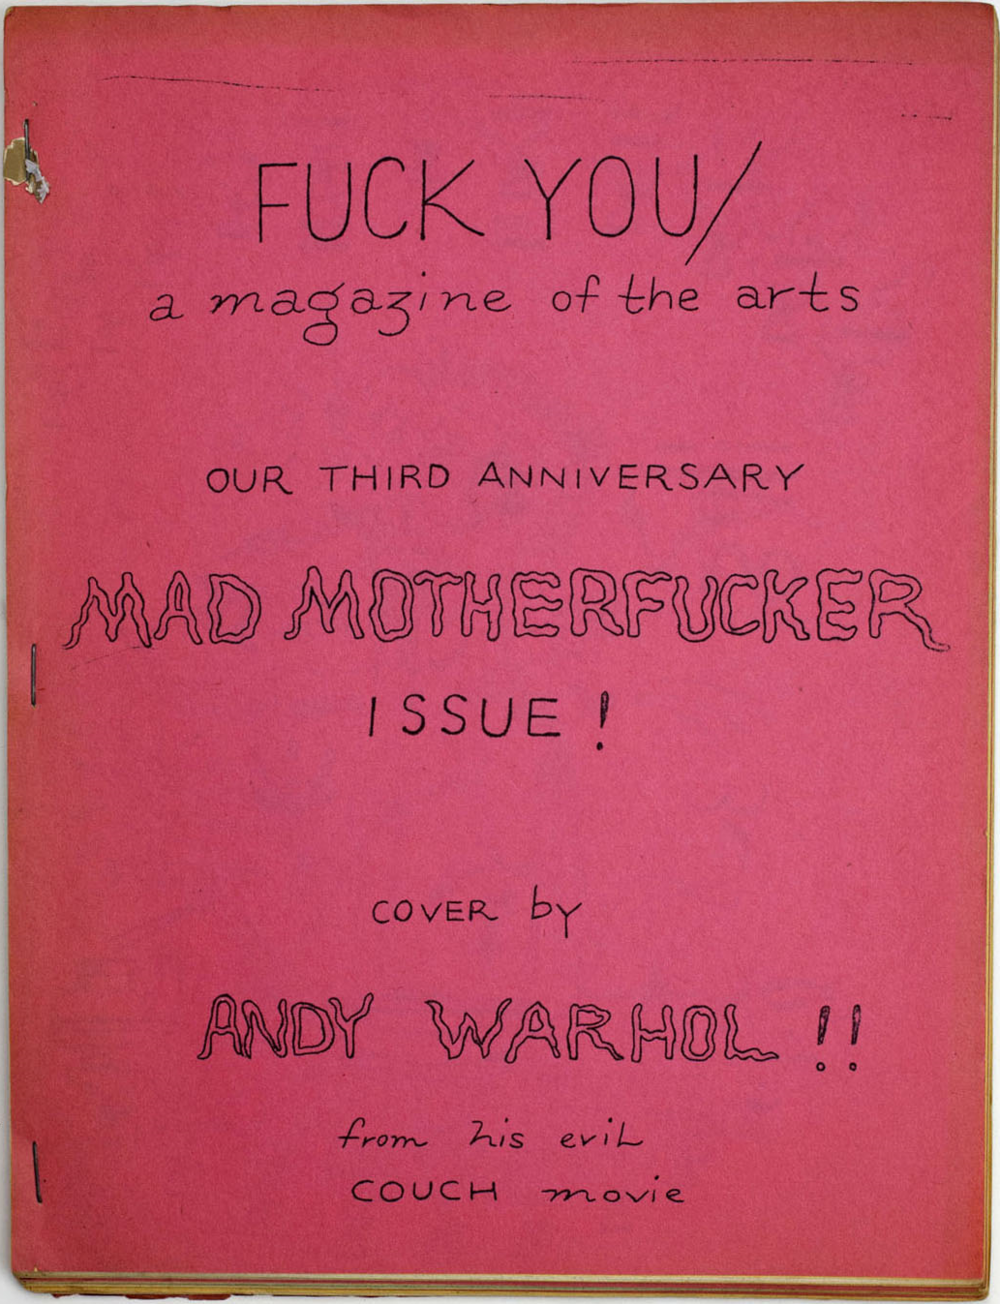 Fuck You (via File Magazine)